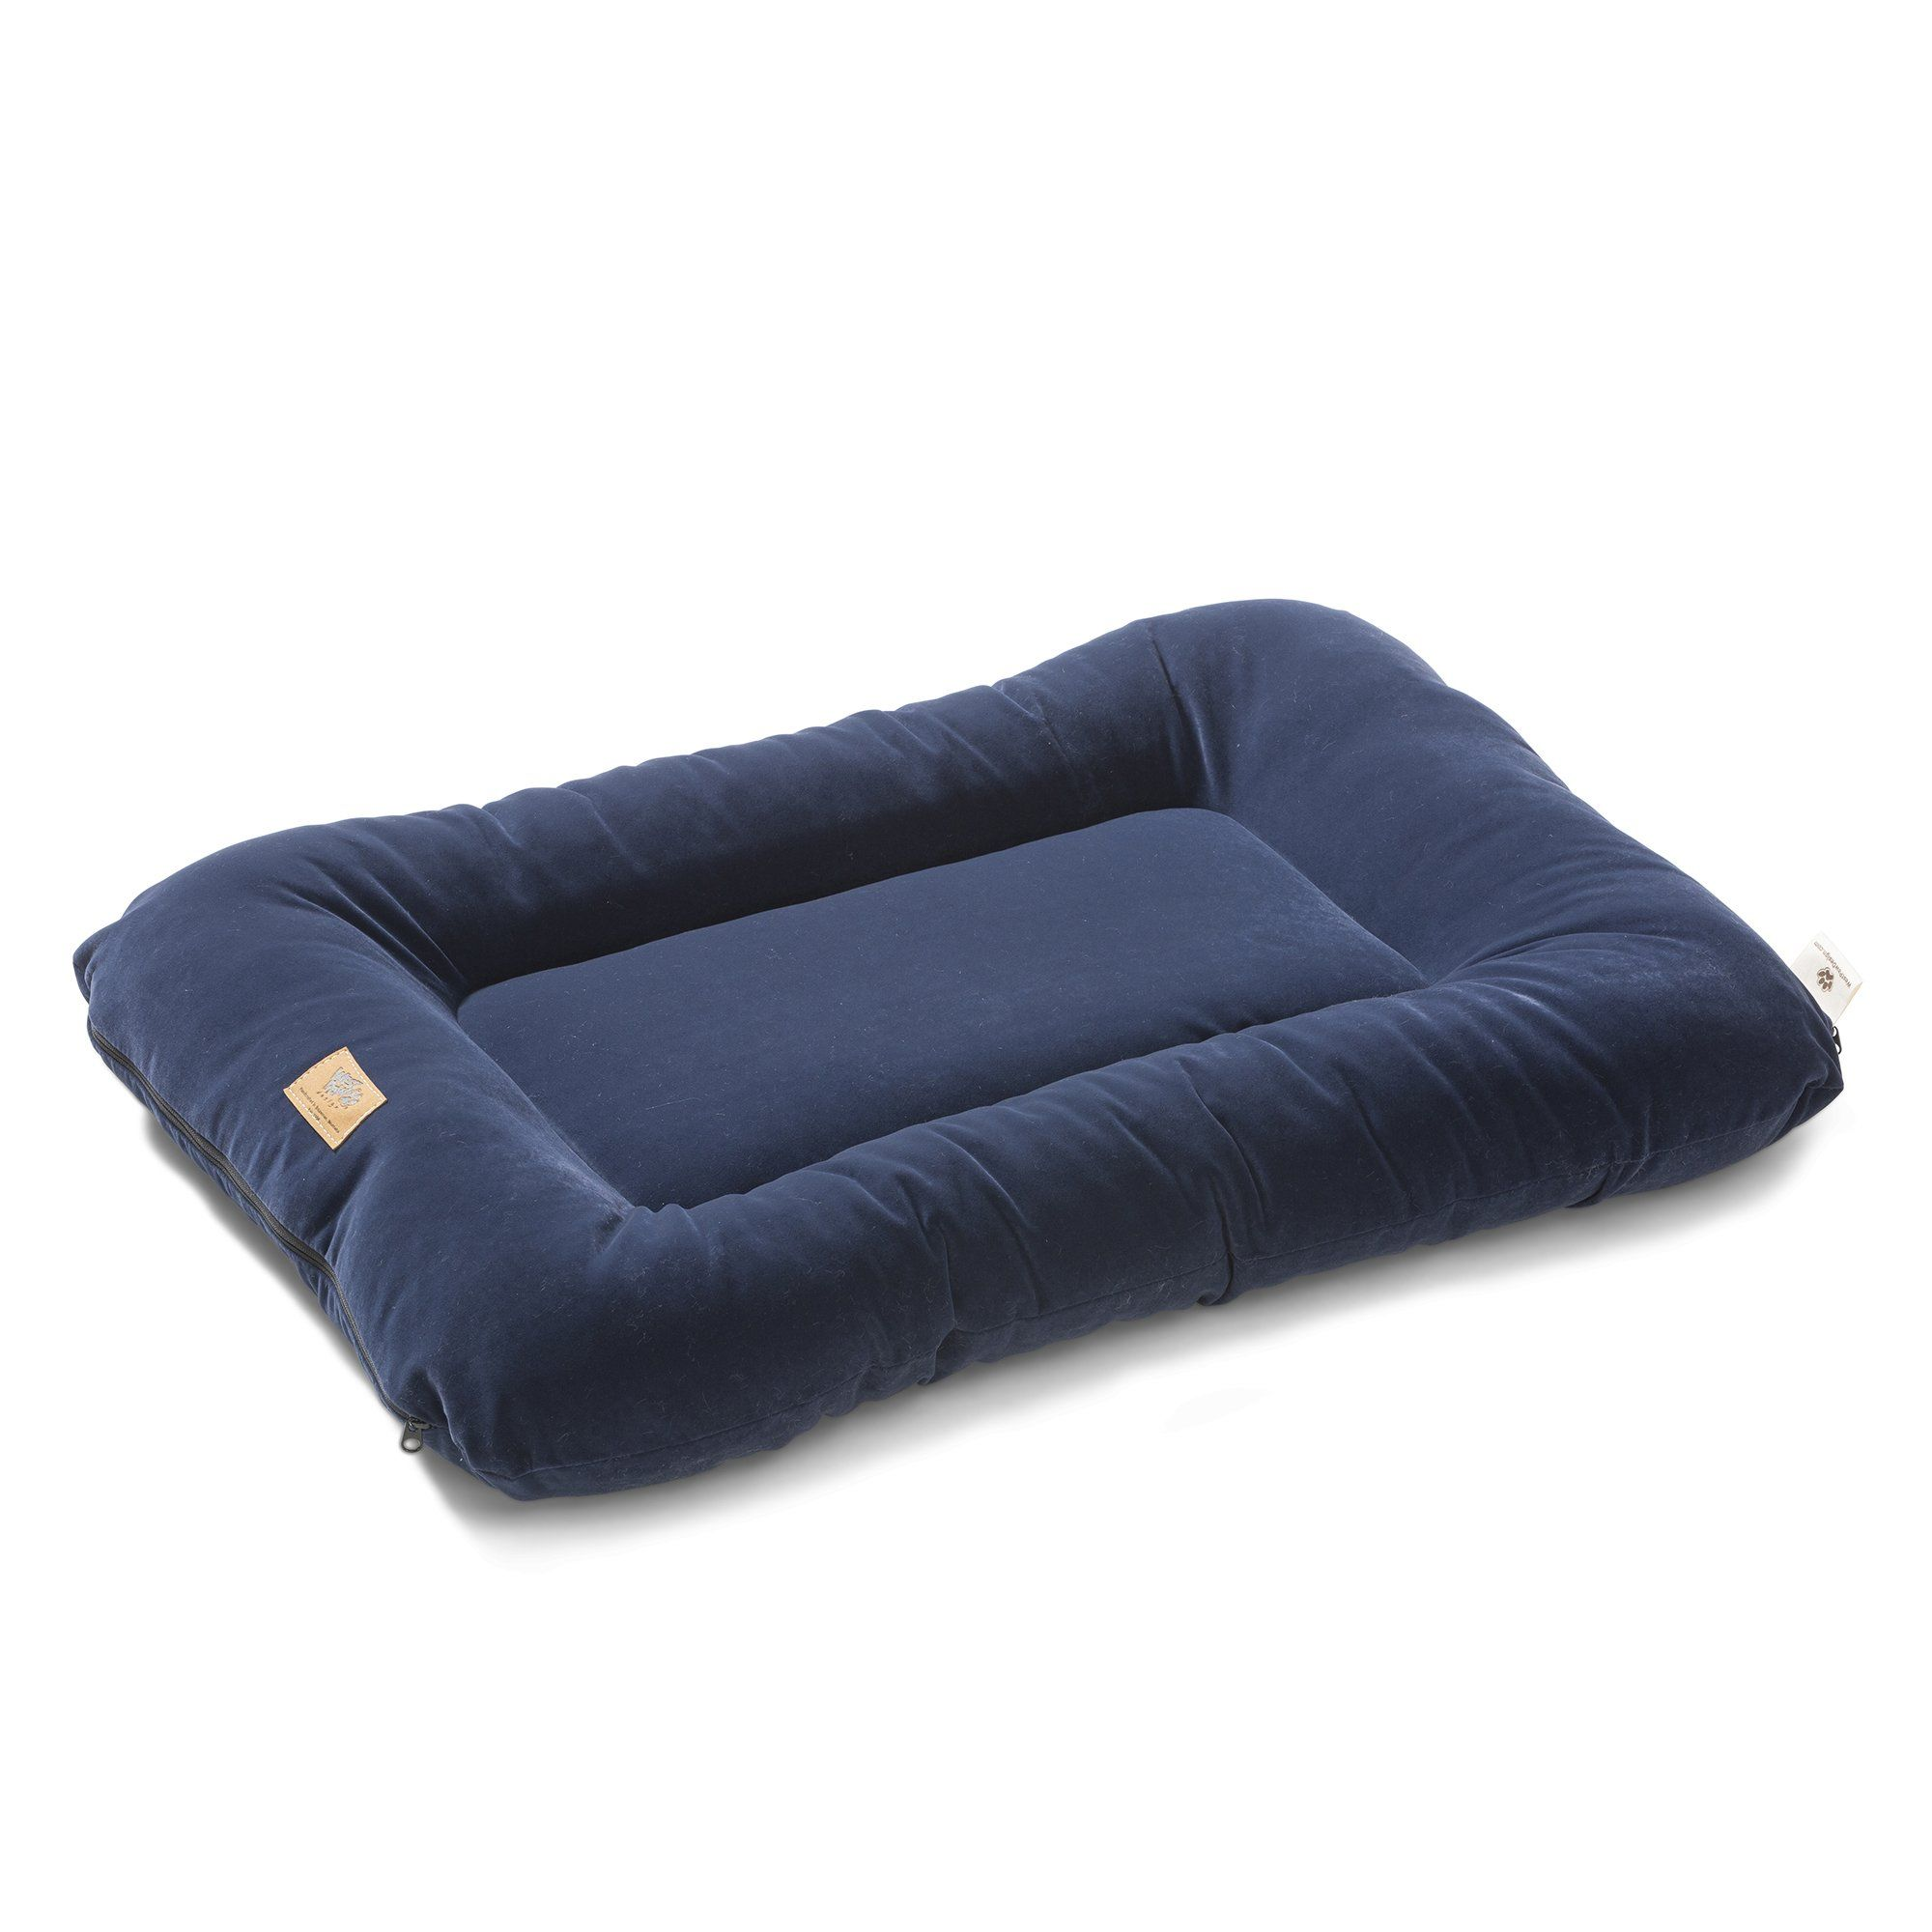 West Paw Design Heyday Dog Bed with Microsuede Super